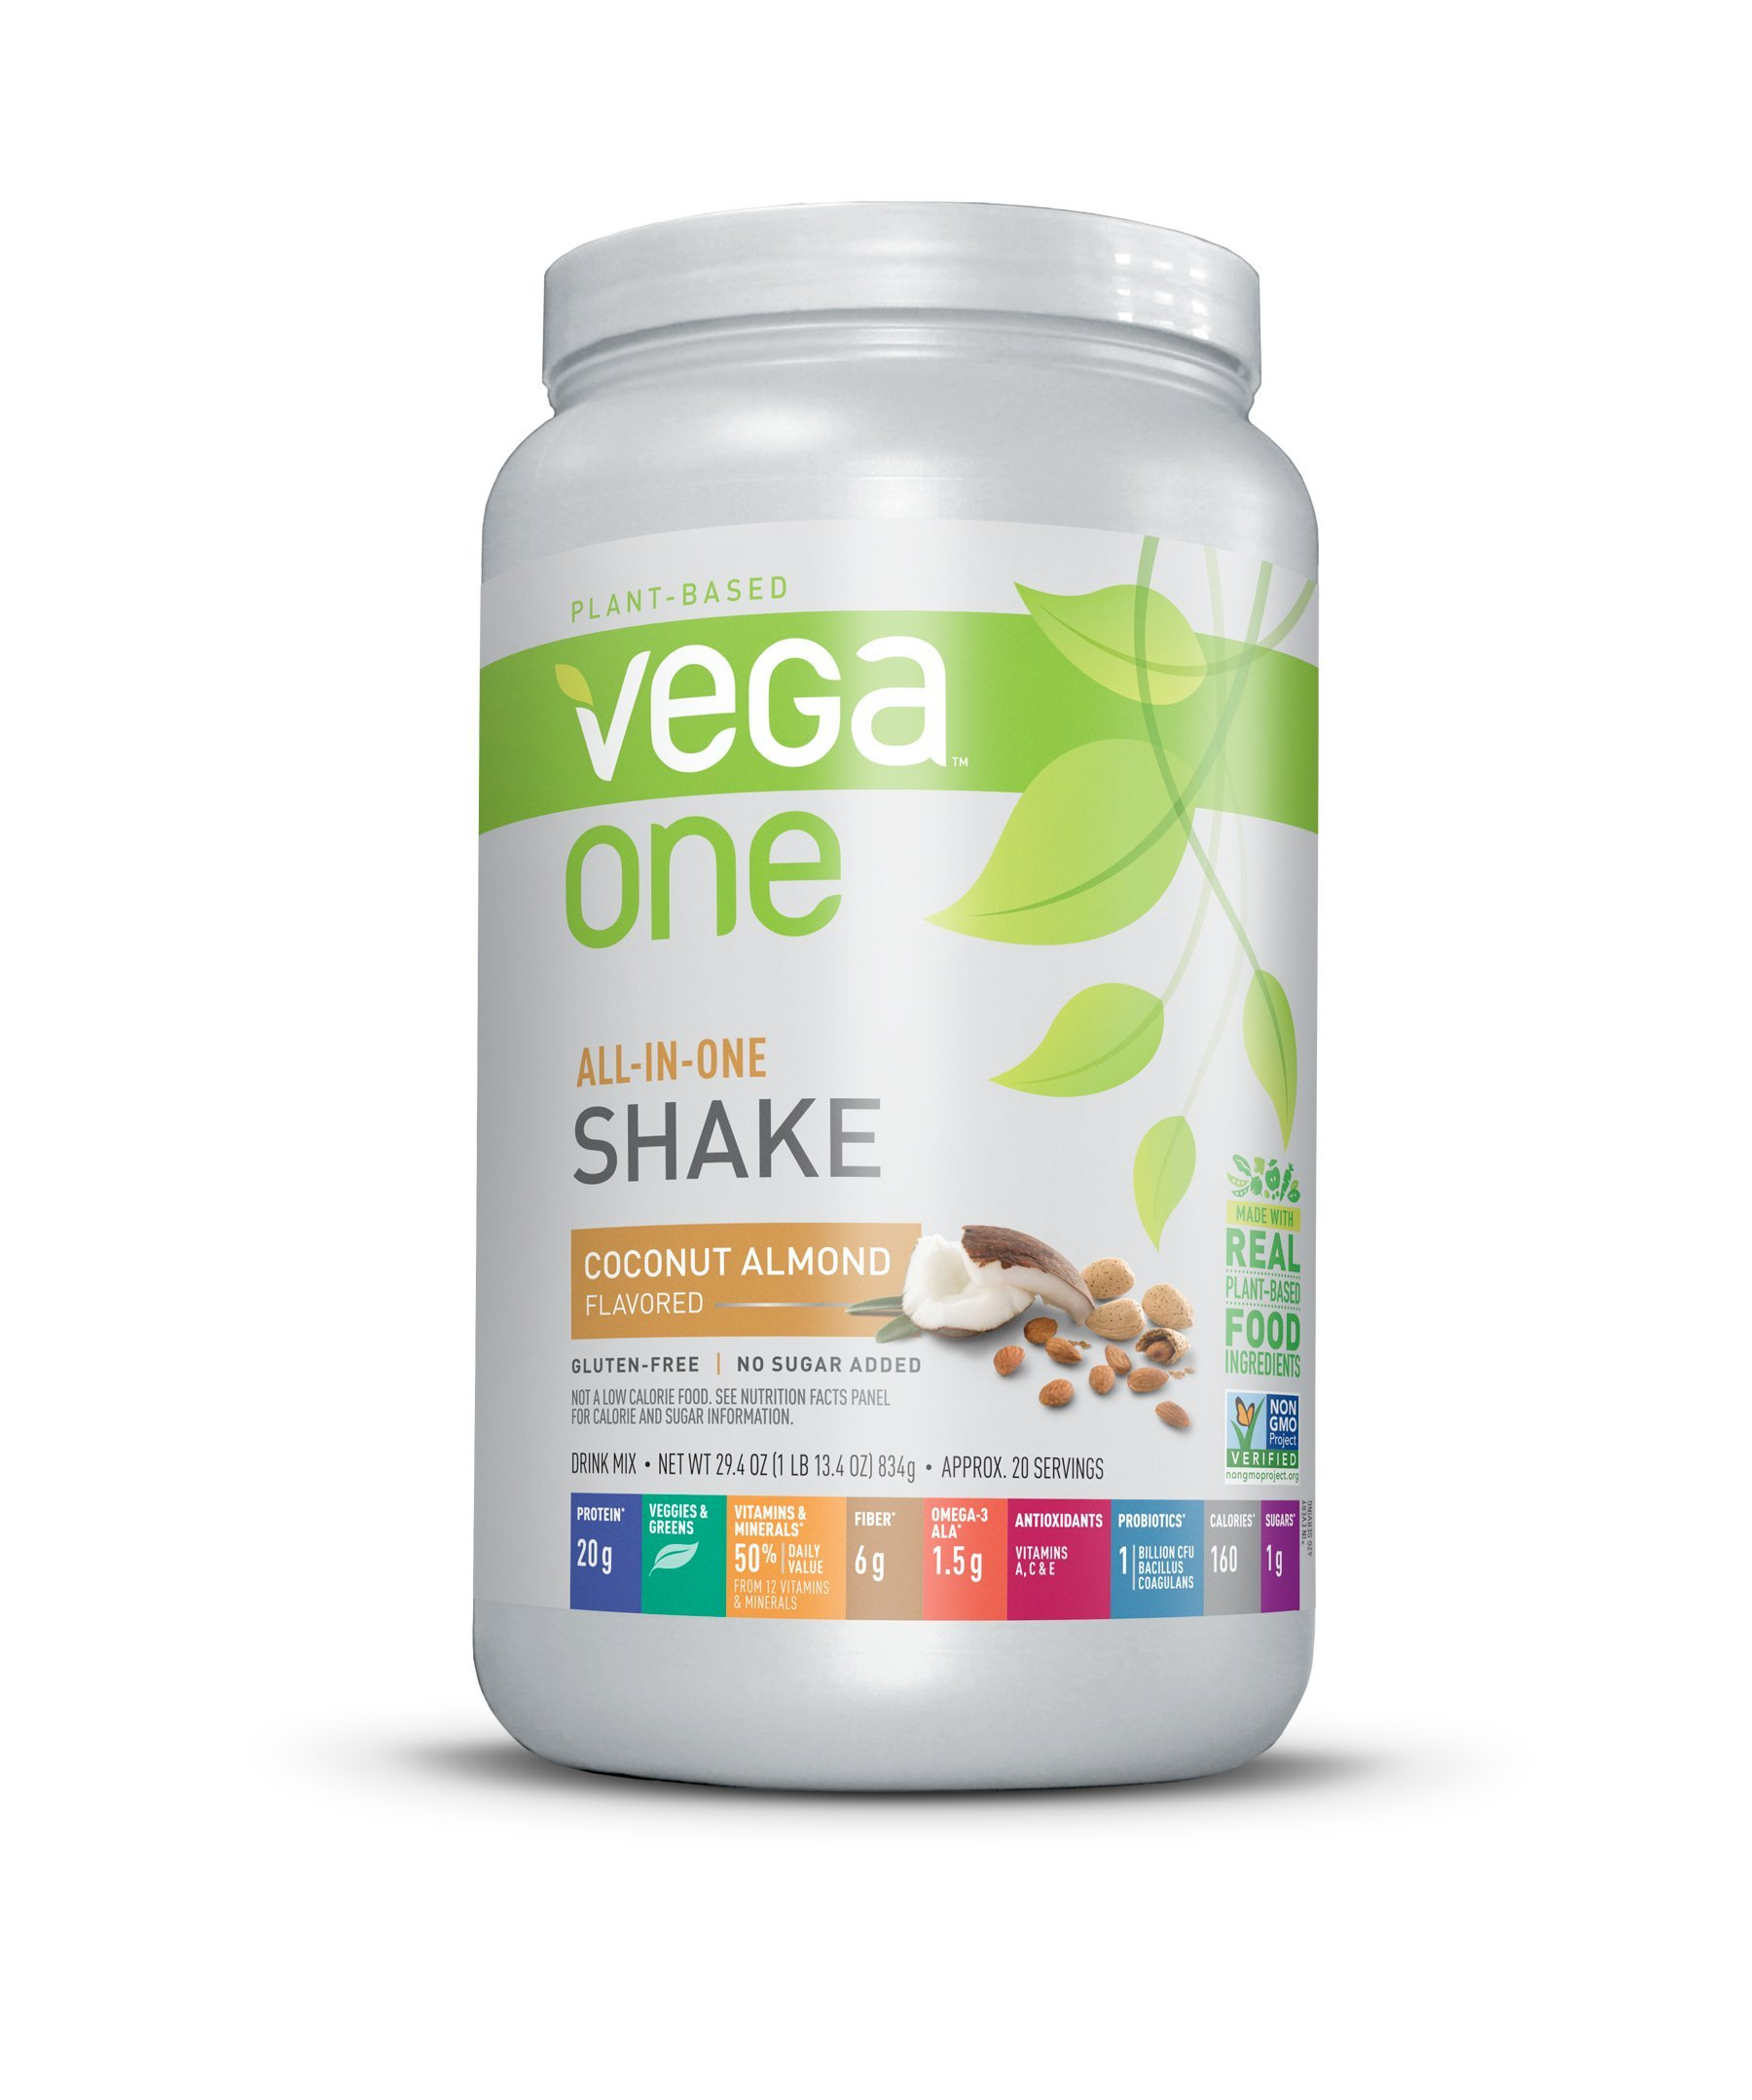 Vega One All-In-One Nutrition Shake Coconut Almond (20 servings) - Plant Based Vegan Protein Powder, Non Dairy, Gluten Free, Non GMO, 29.4 Ounce (Pack of 1)